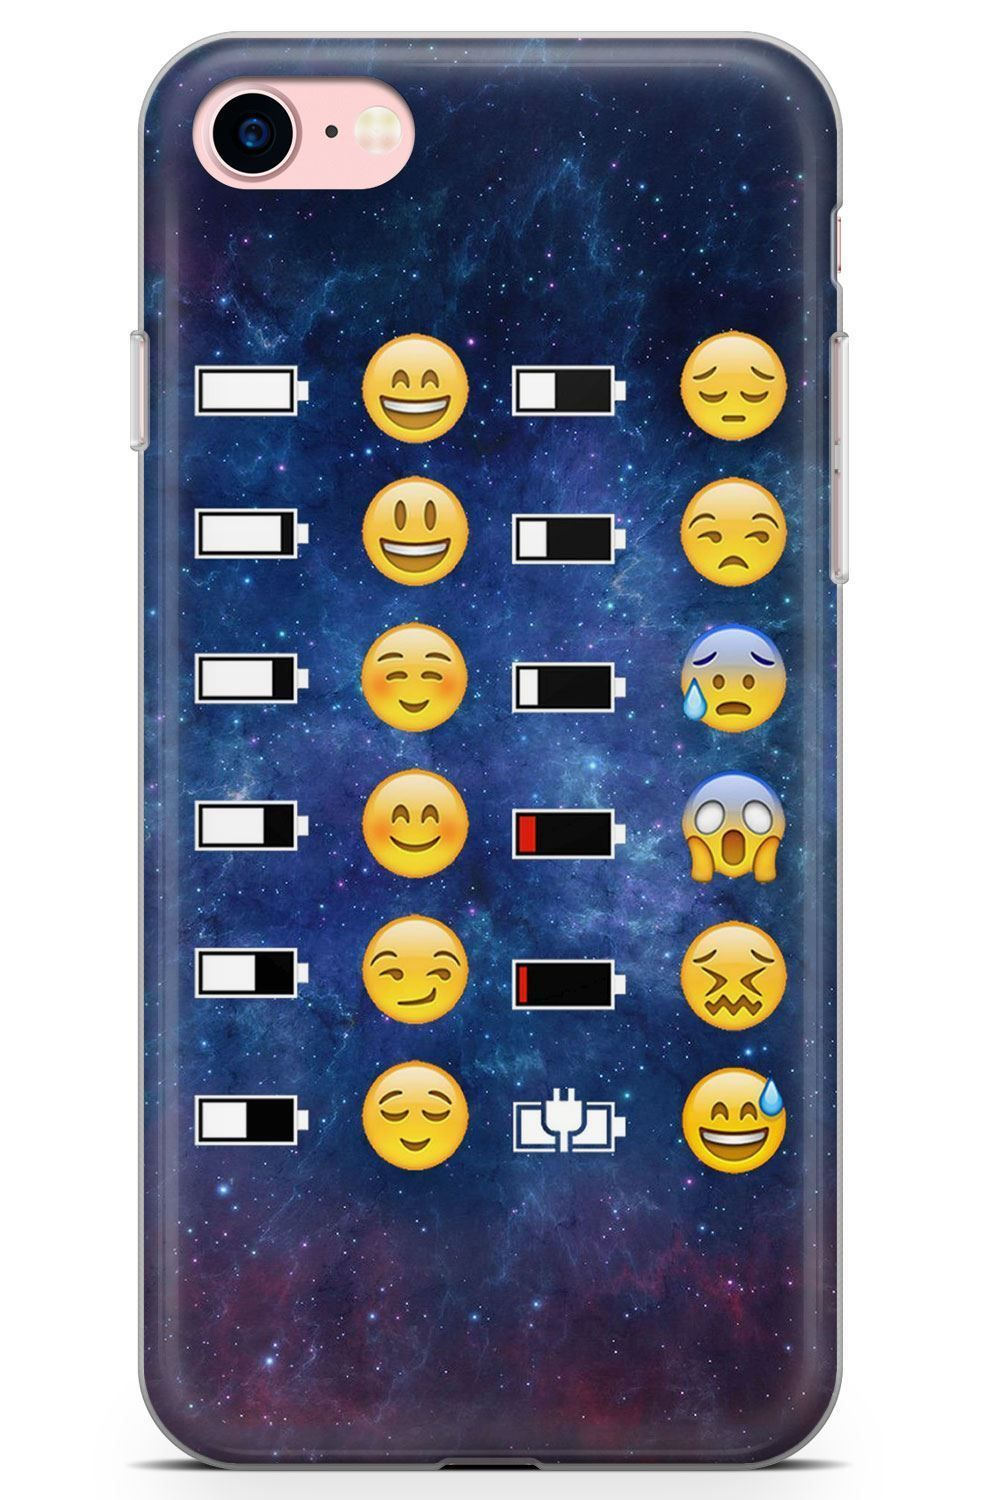 There Is Nothing Worse Than A Flat Battery We Know What You Go Through Protect Your Phone With This Super Awesom Emoji Phone Cases Iphone Cases Emoji Fashion